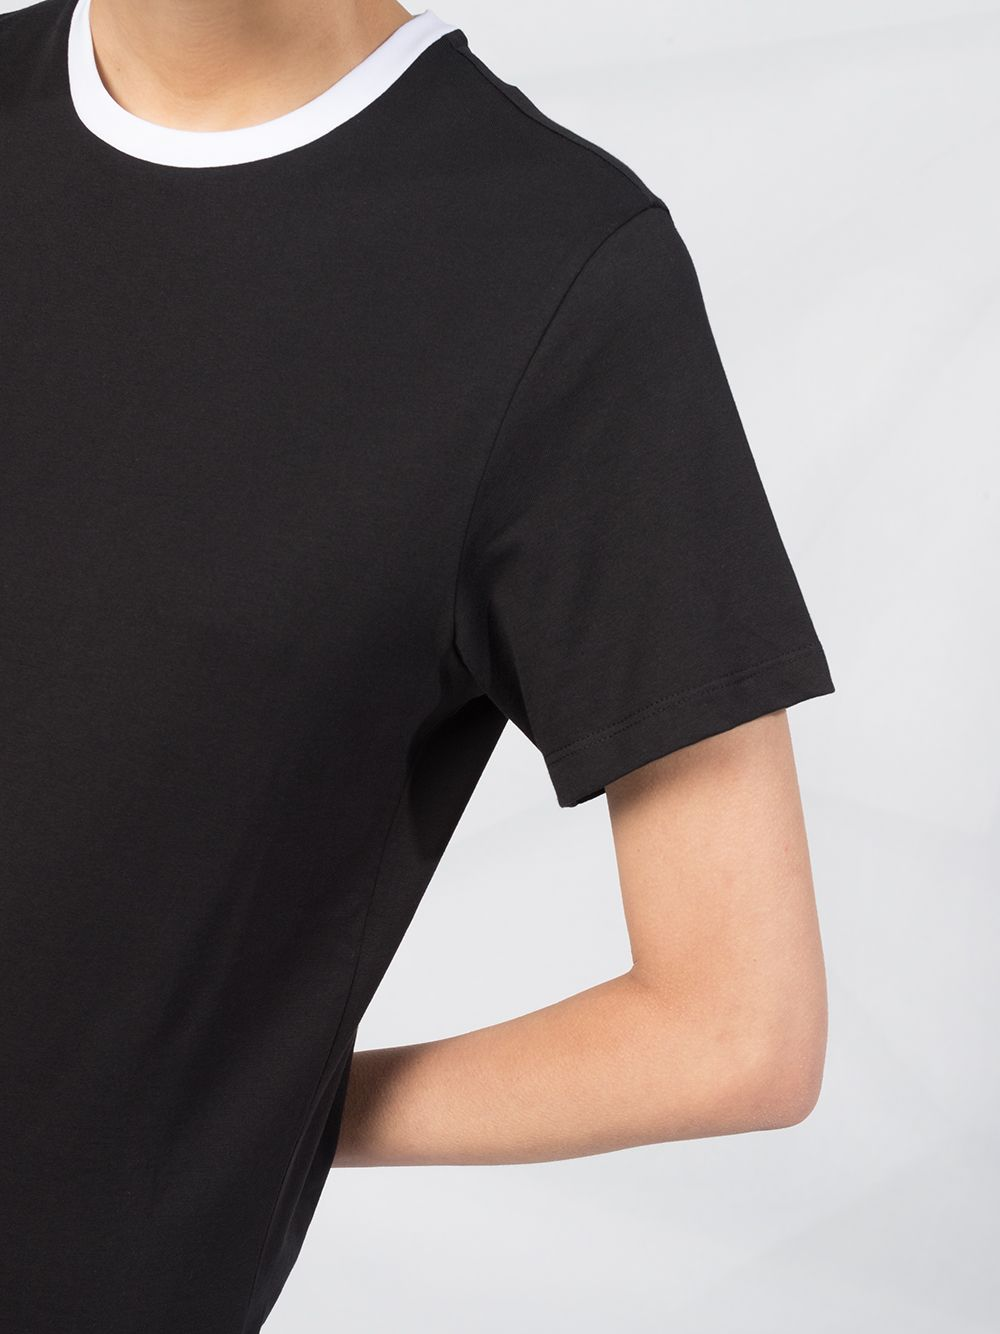 black cotton t-shirt with contrasting white crew-neck MONCLER |  | 8C778-10-V8161999